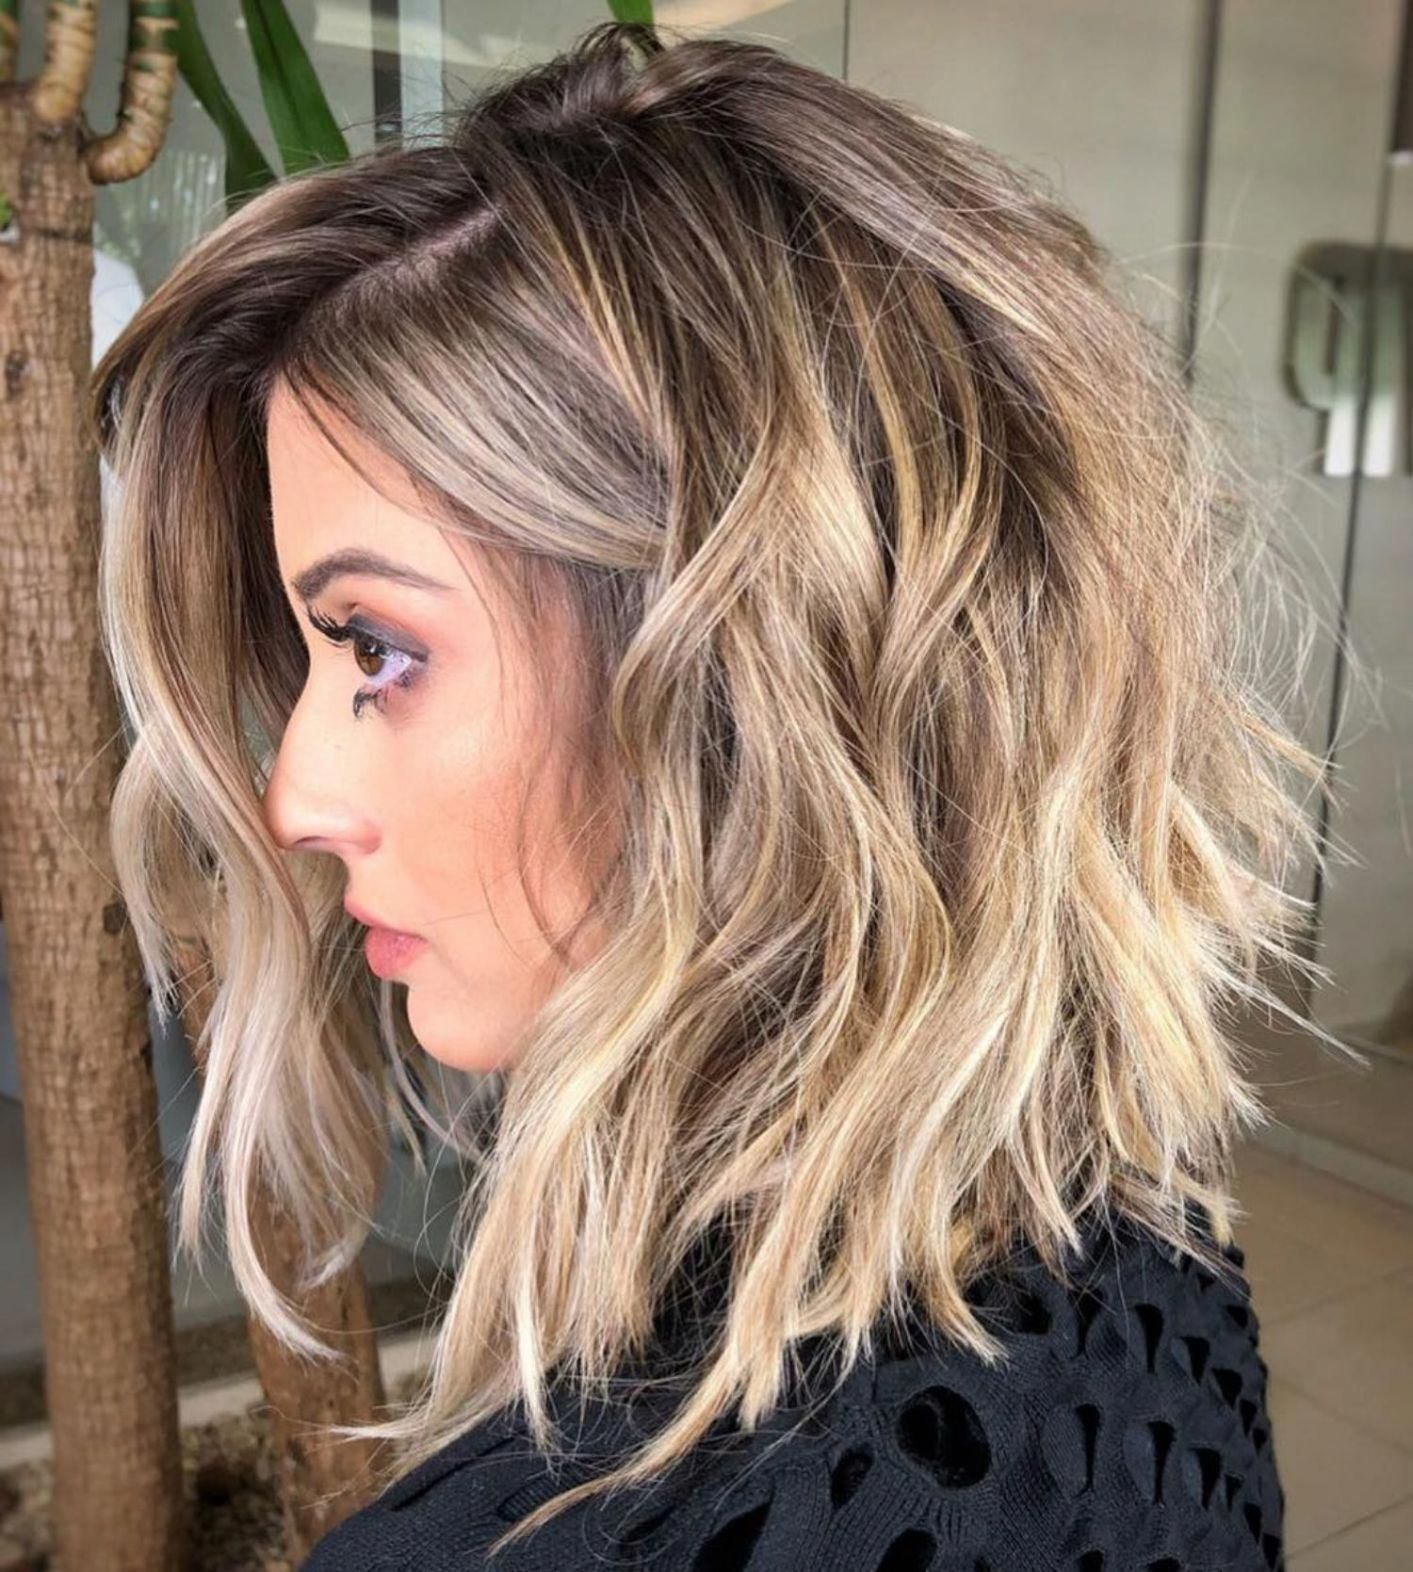 60 Most Magnetizing Hairstyles For Thick Wavy Hair Thick Wavy Hair Thick Hair Styles Hair Styles